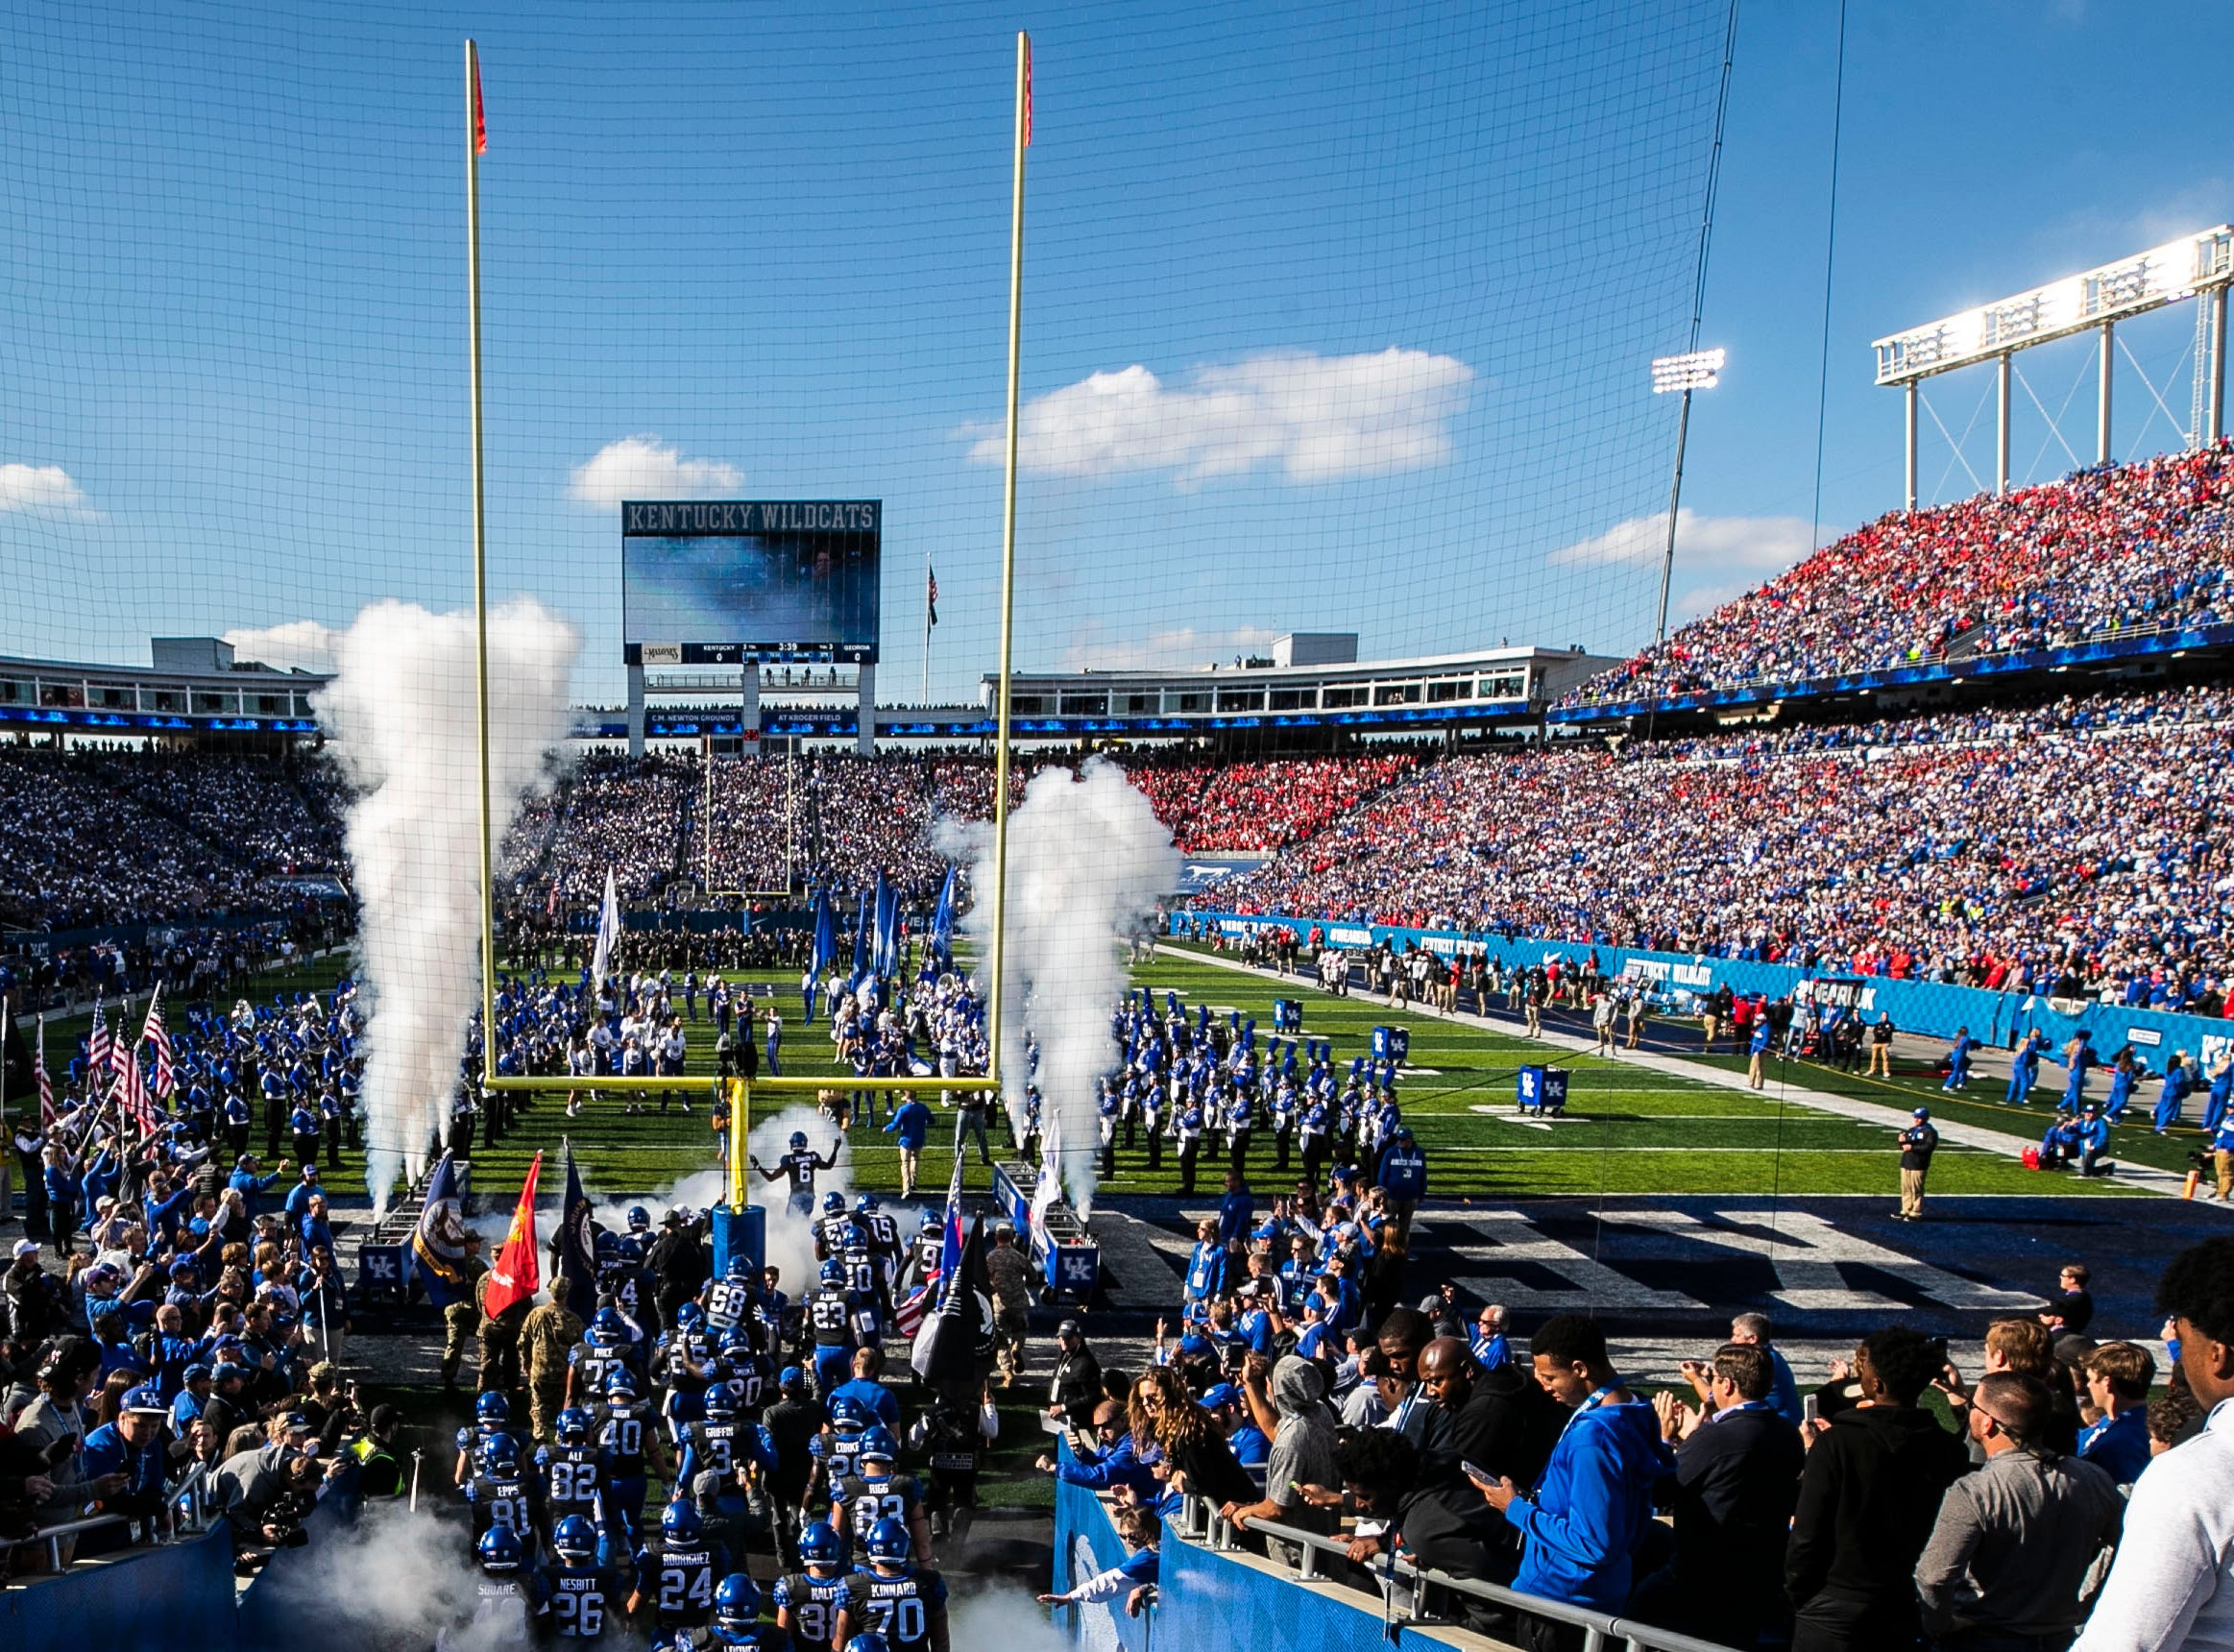 Under smoke and amid the roar of a packed Kroger Field, the Kentucky team runs out on the field before the start against Georgia. Saturday. Nov. 3, 2018